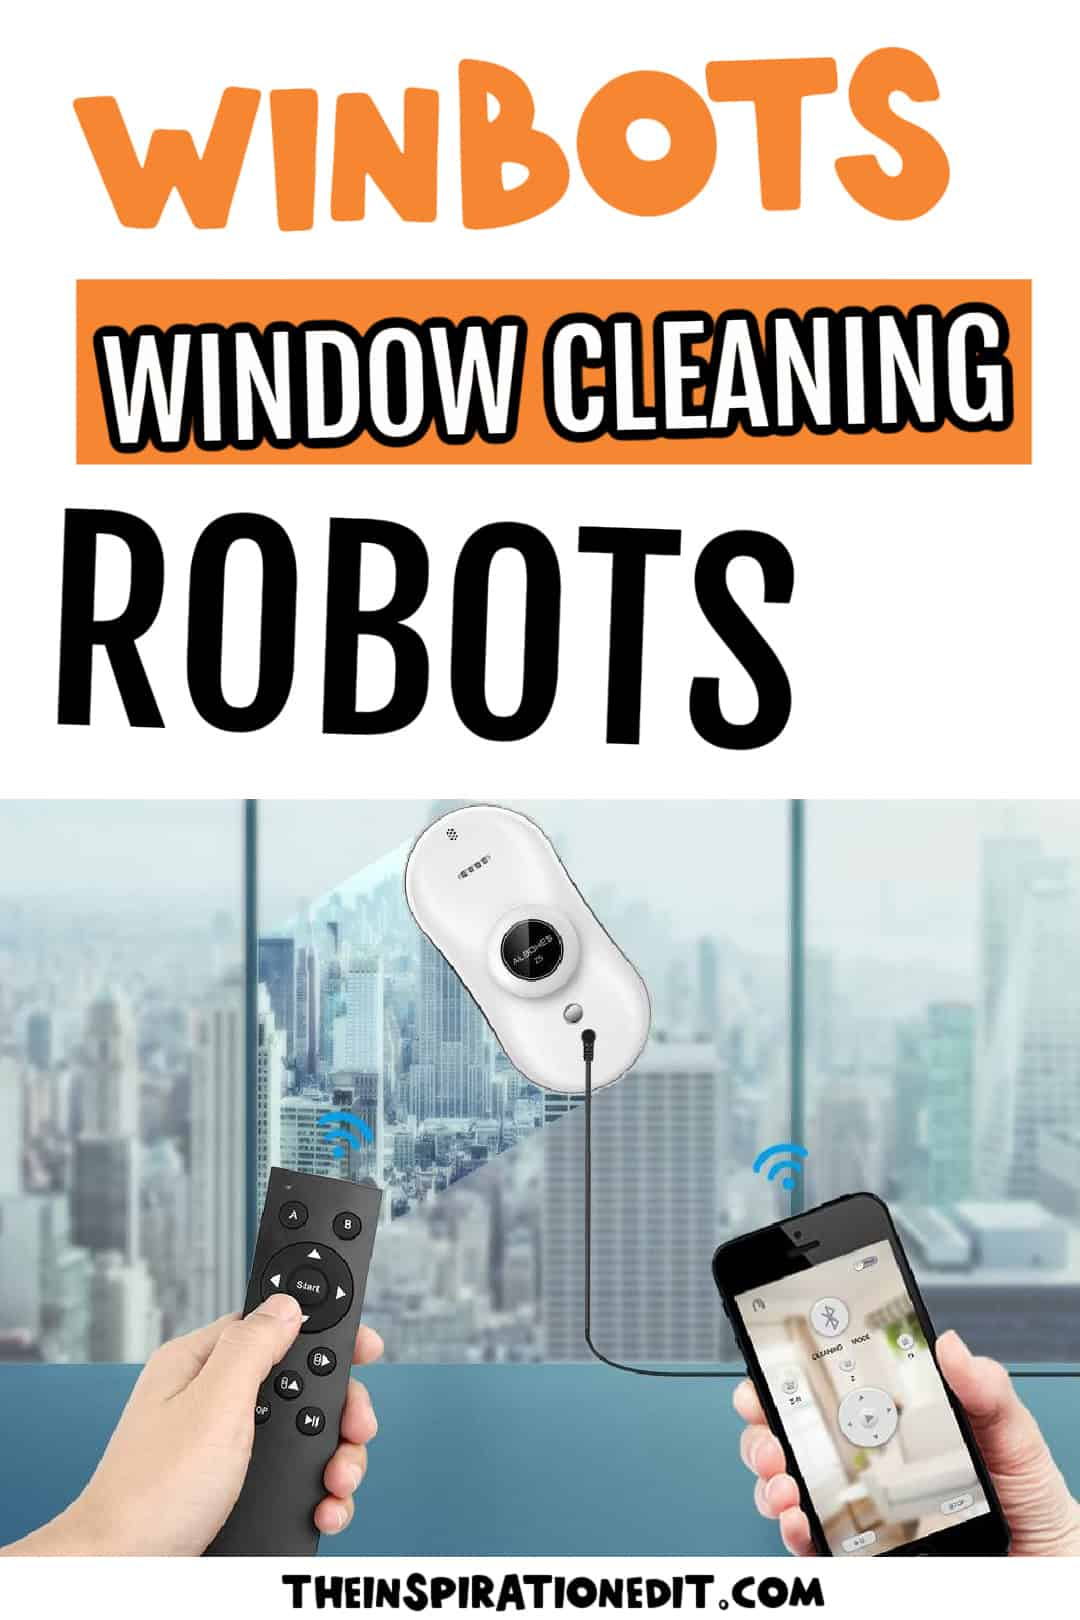 winbots window cleaning robots